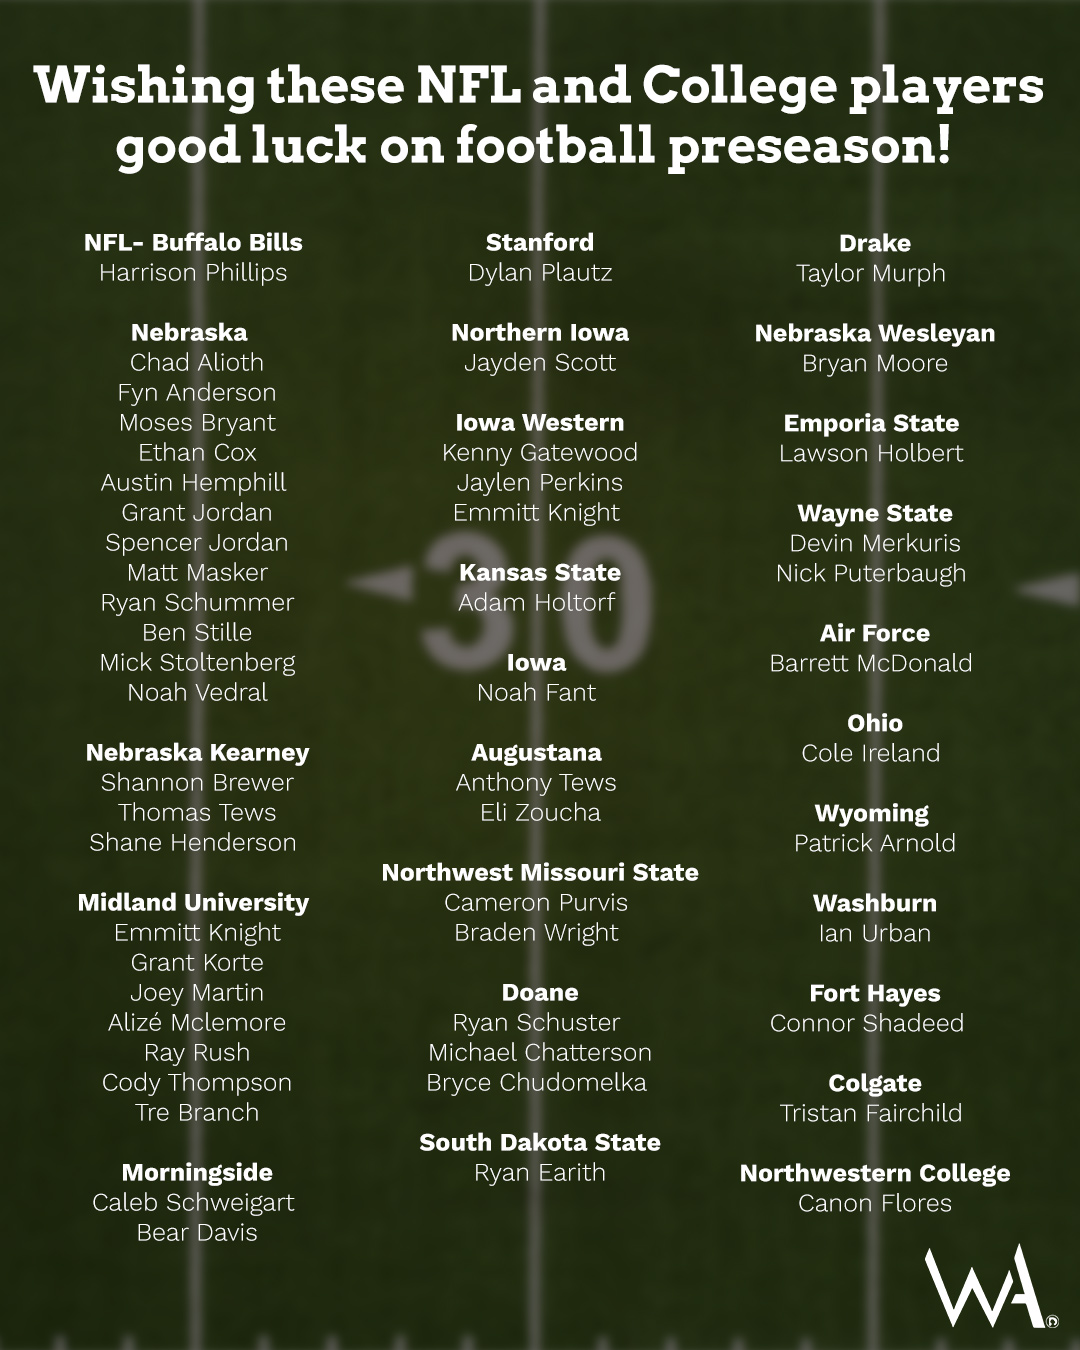 Good luck to these NFL and college athletes!